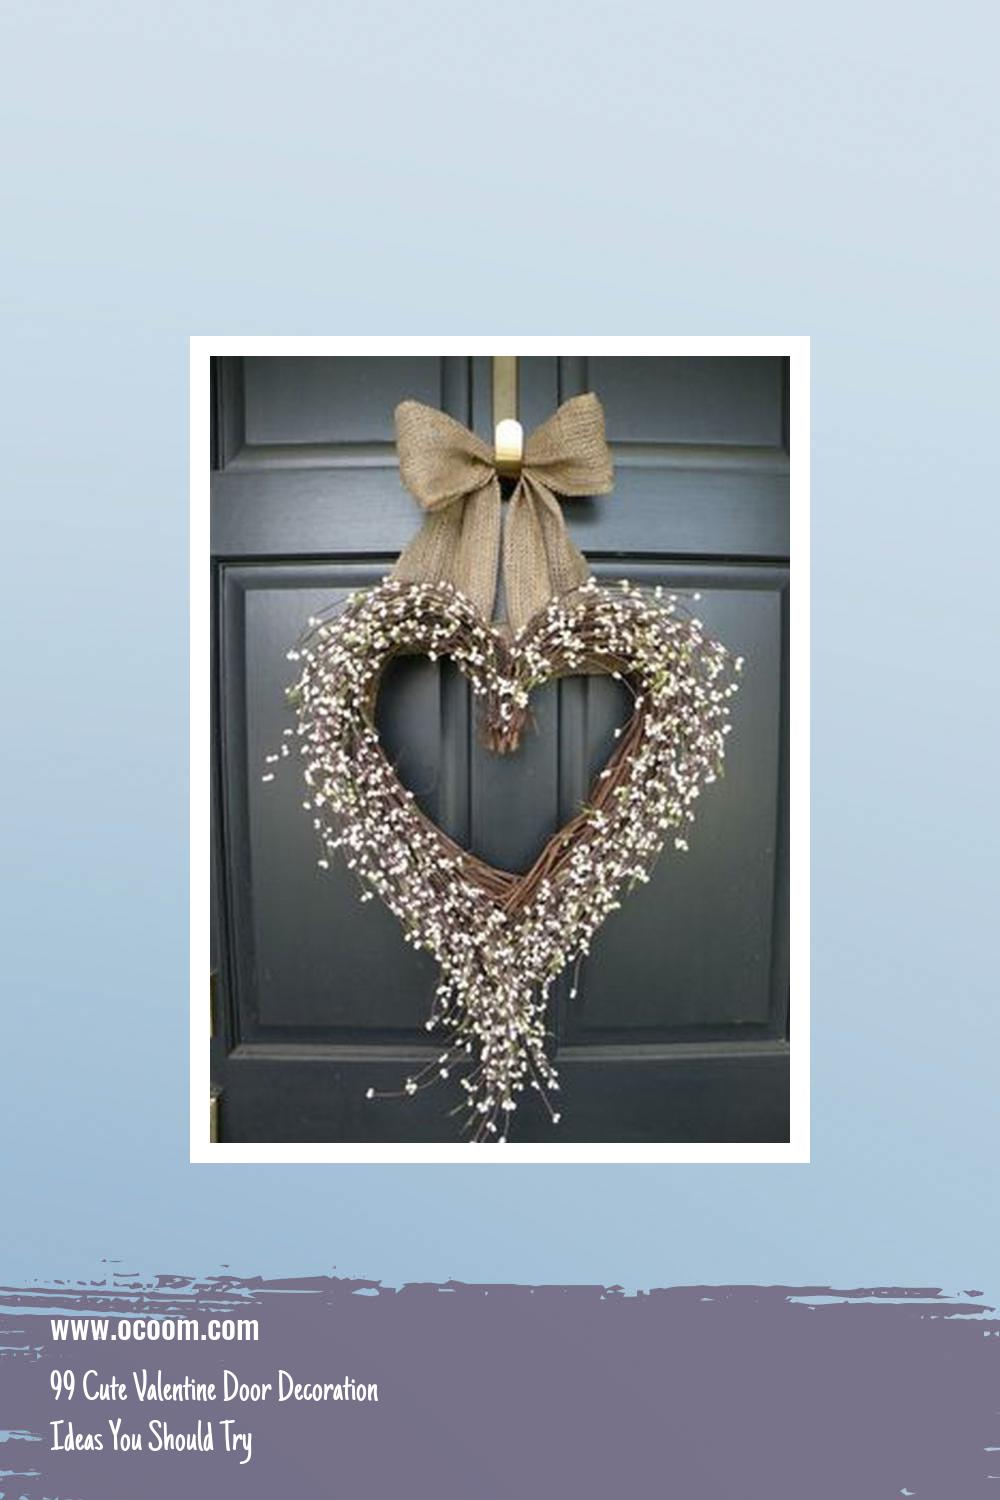 99 Cute Valentine Door Decoration Ideas You Should Try 7